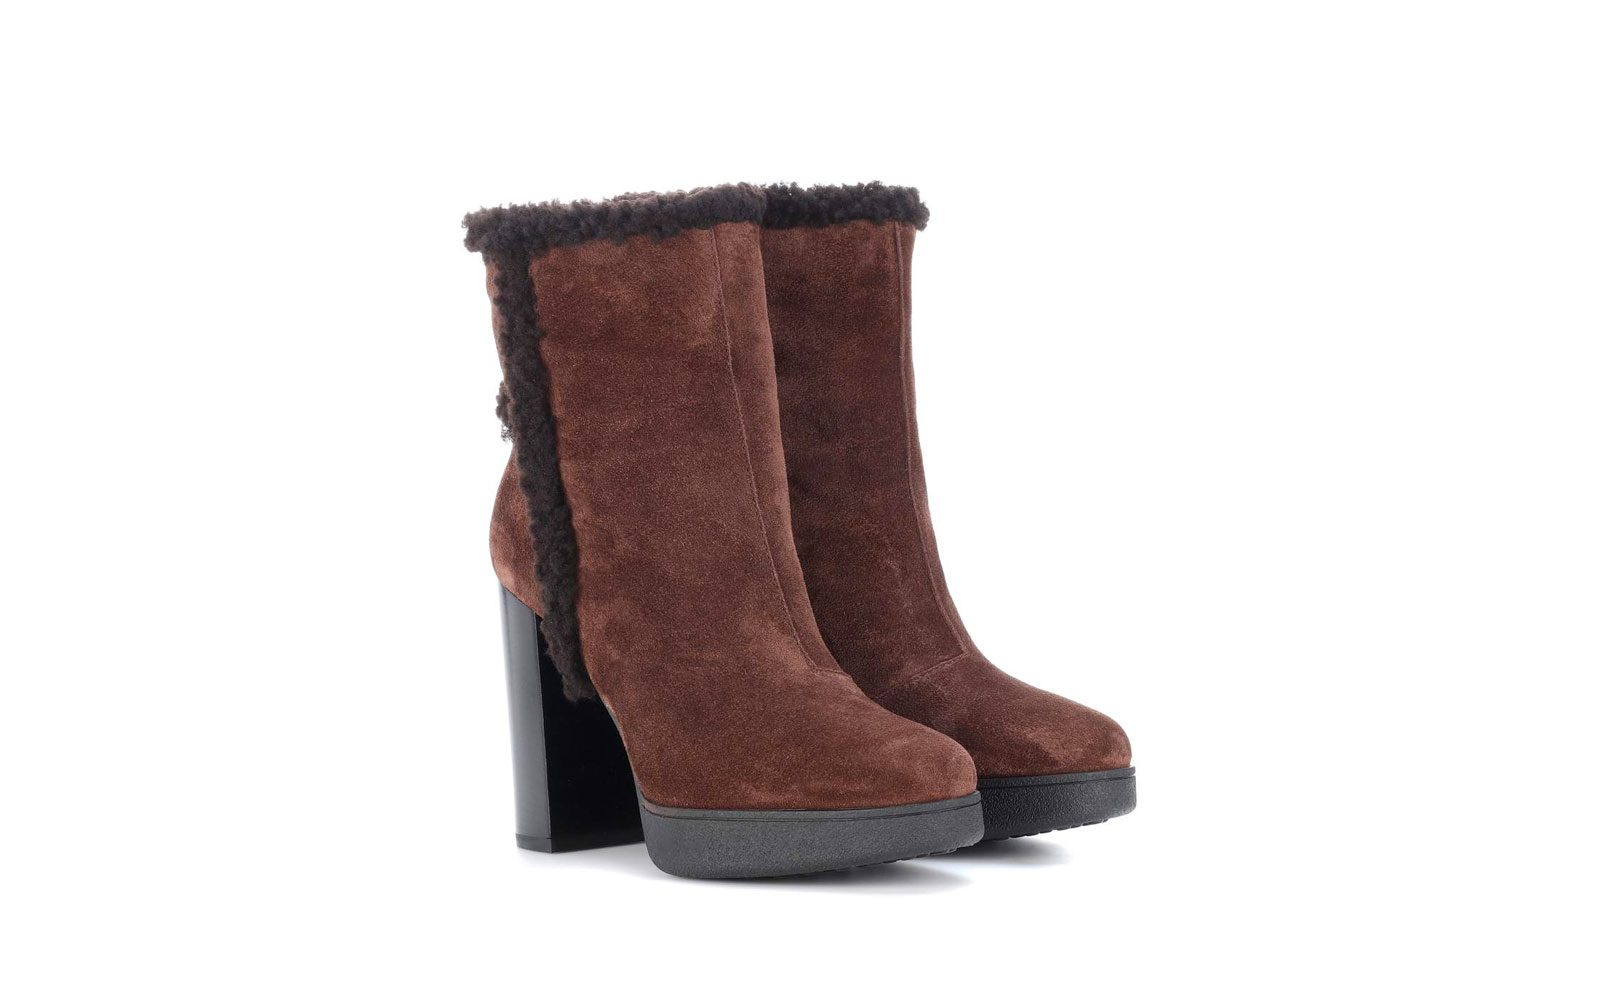 Tods – Stivaletti in suede con shearling